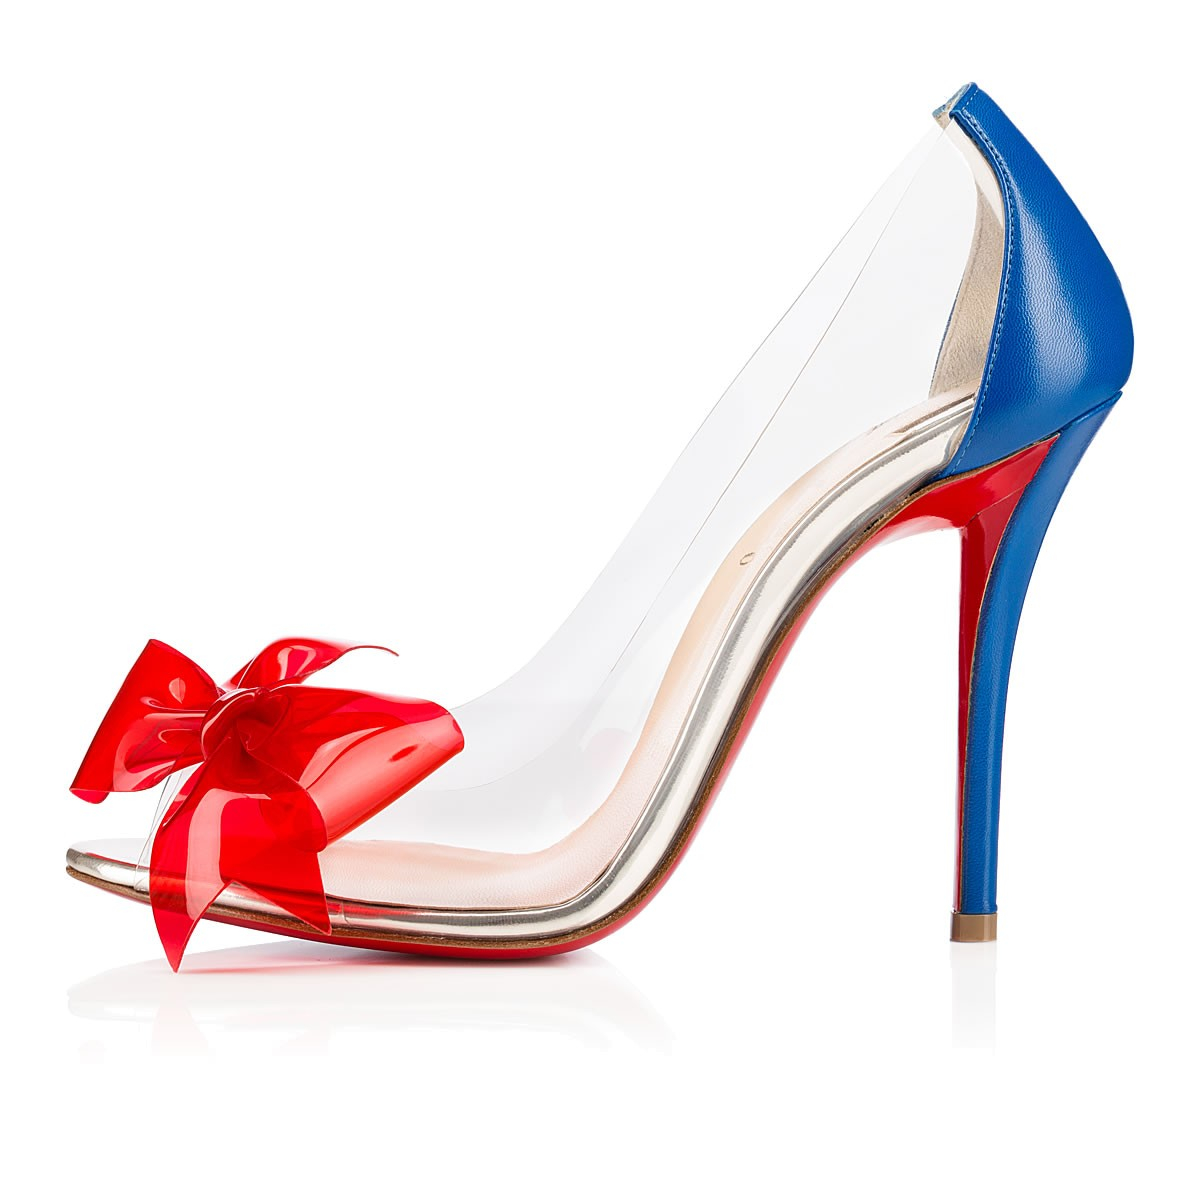 100% authentic d6029 18978 Shoeniverse: The Christian Louboutin heels roundup featuring ...